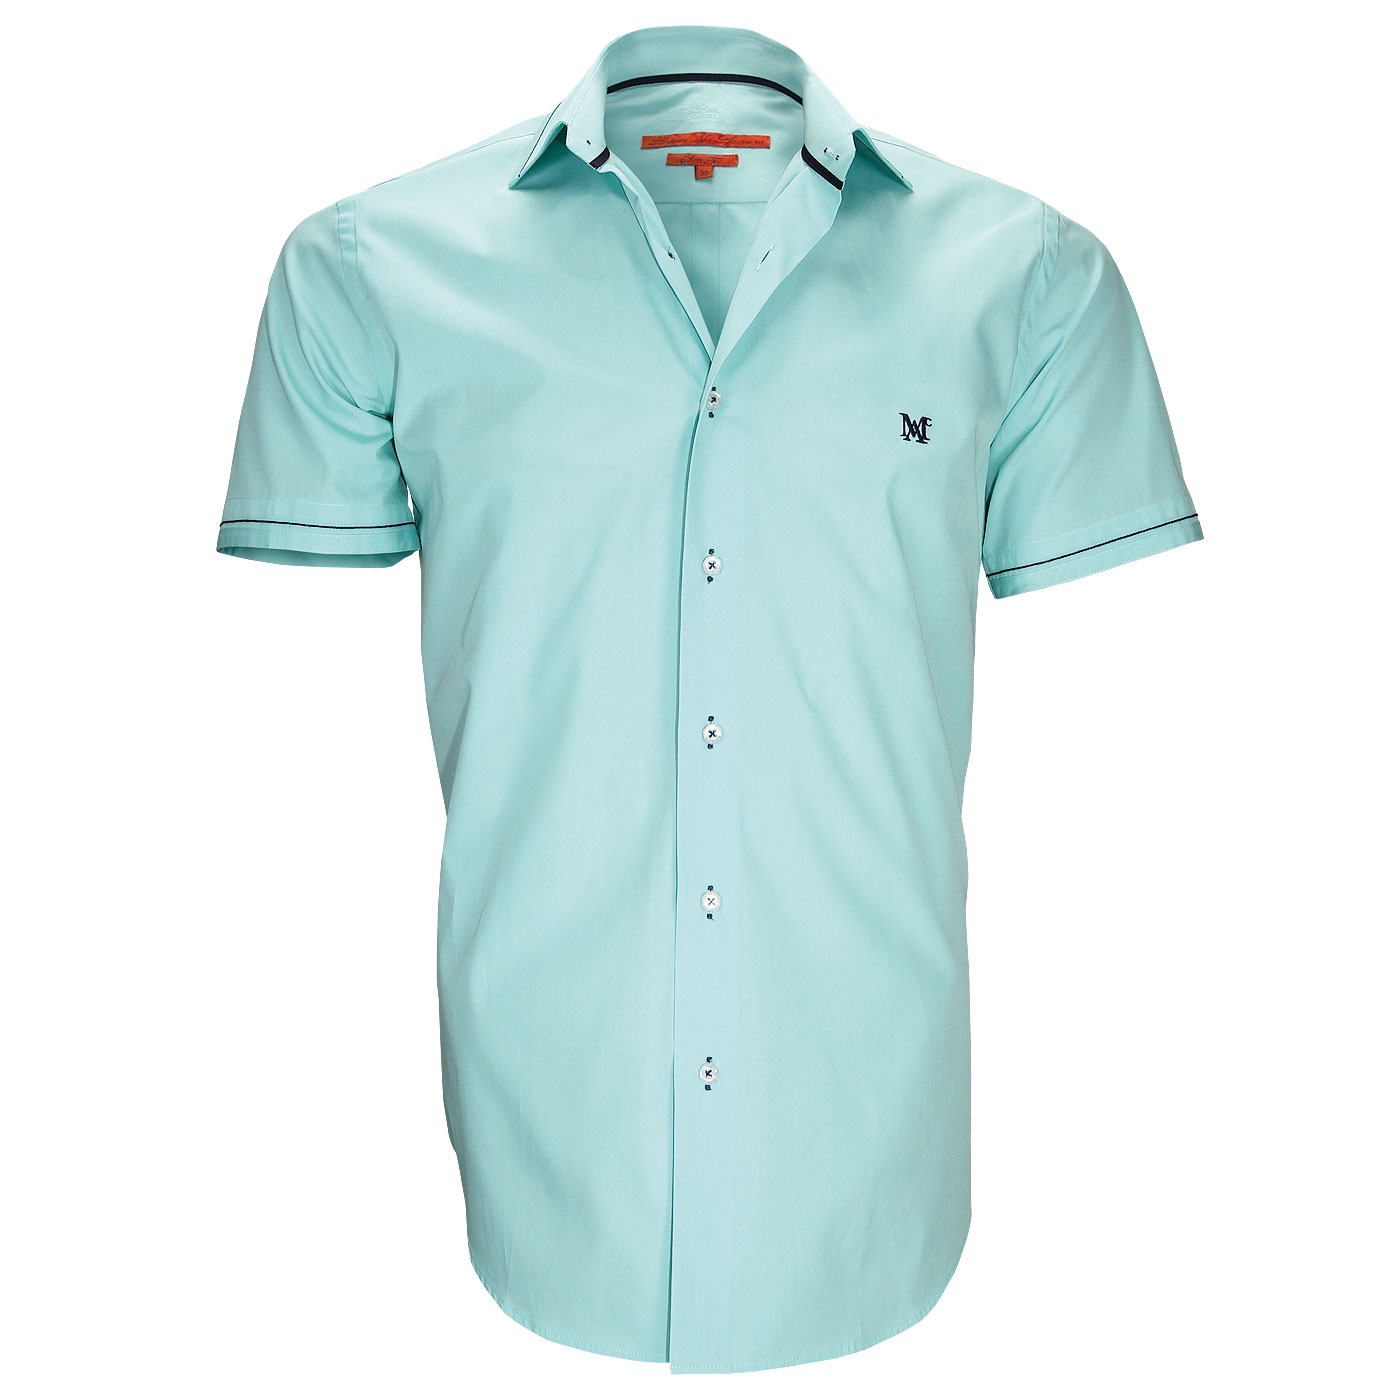 Green shirt very present in the New Collection Webmenshirts